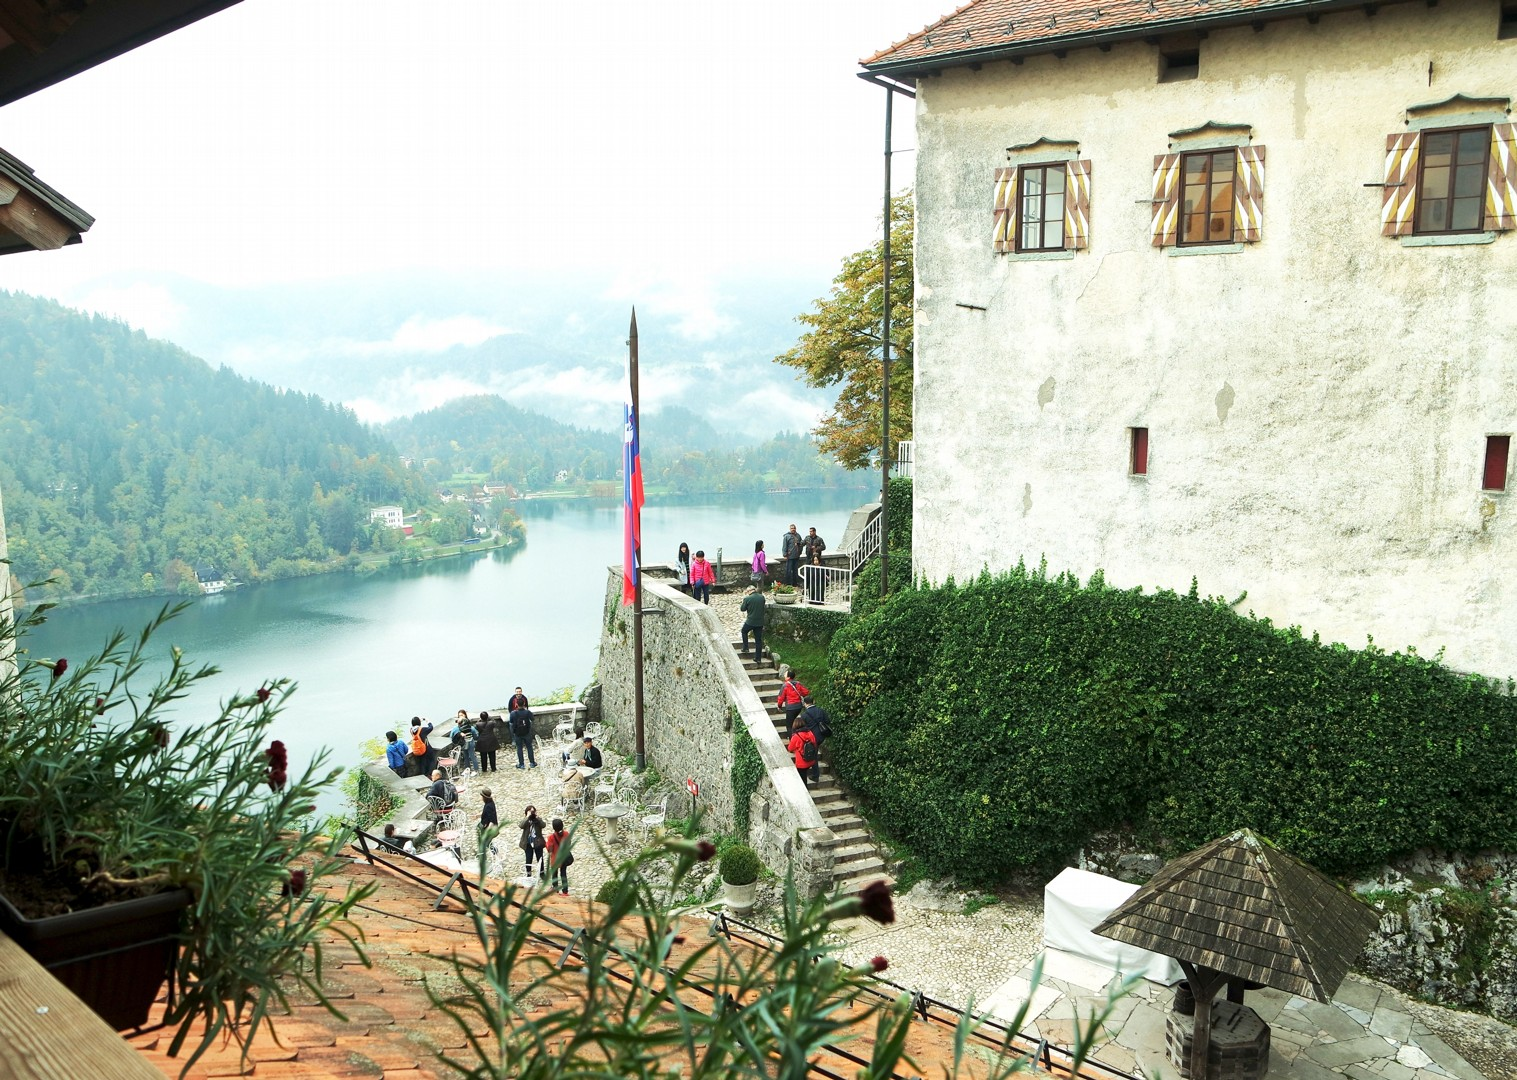 bled-castle-leisure-cycling-holiday-slovenia-highlights-of-lake-bled.JPG - Slovenia - Highlights of Lake Bled - Self-Guided Leisure Cycling Holiday - Leisure Cycling